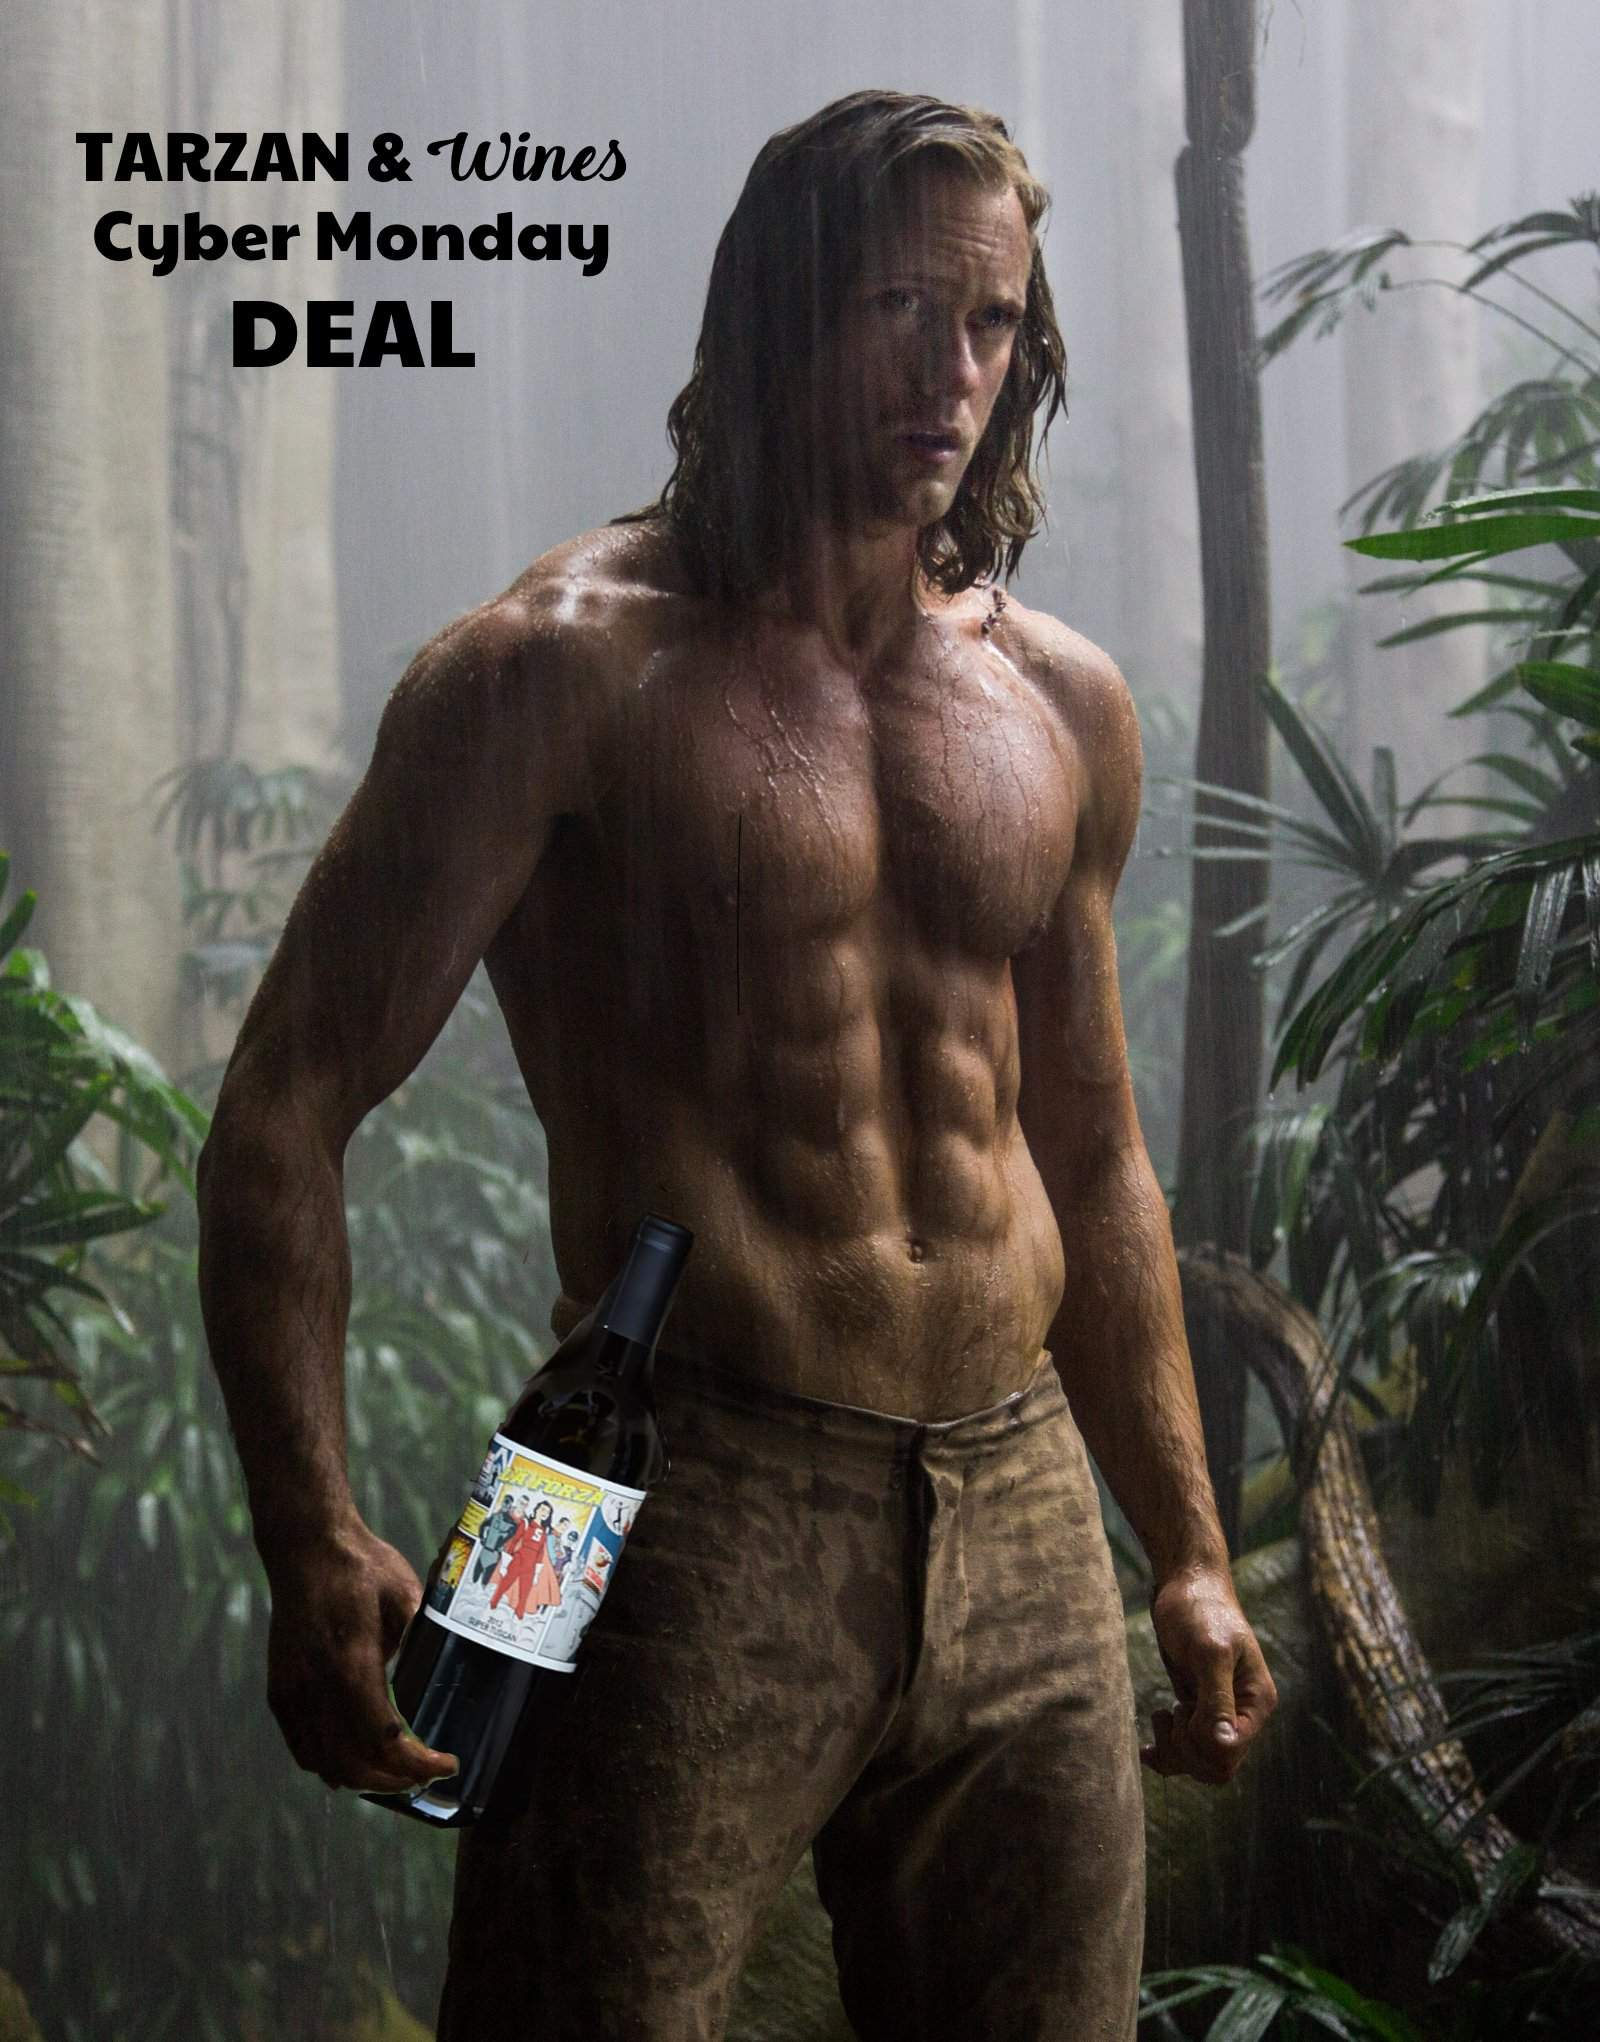 Tarzan & Some Wines Cyber Monday Deal!